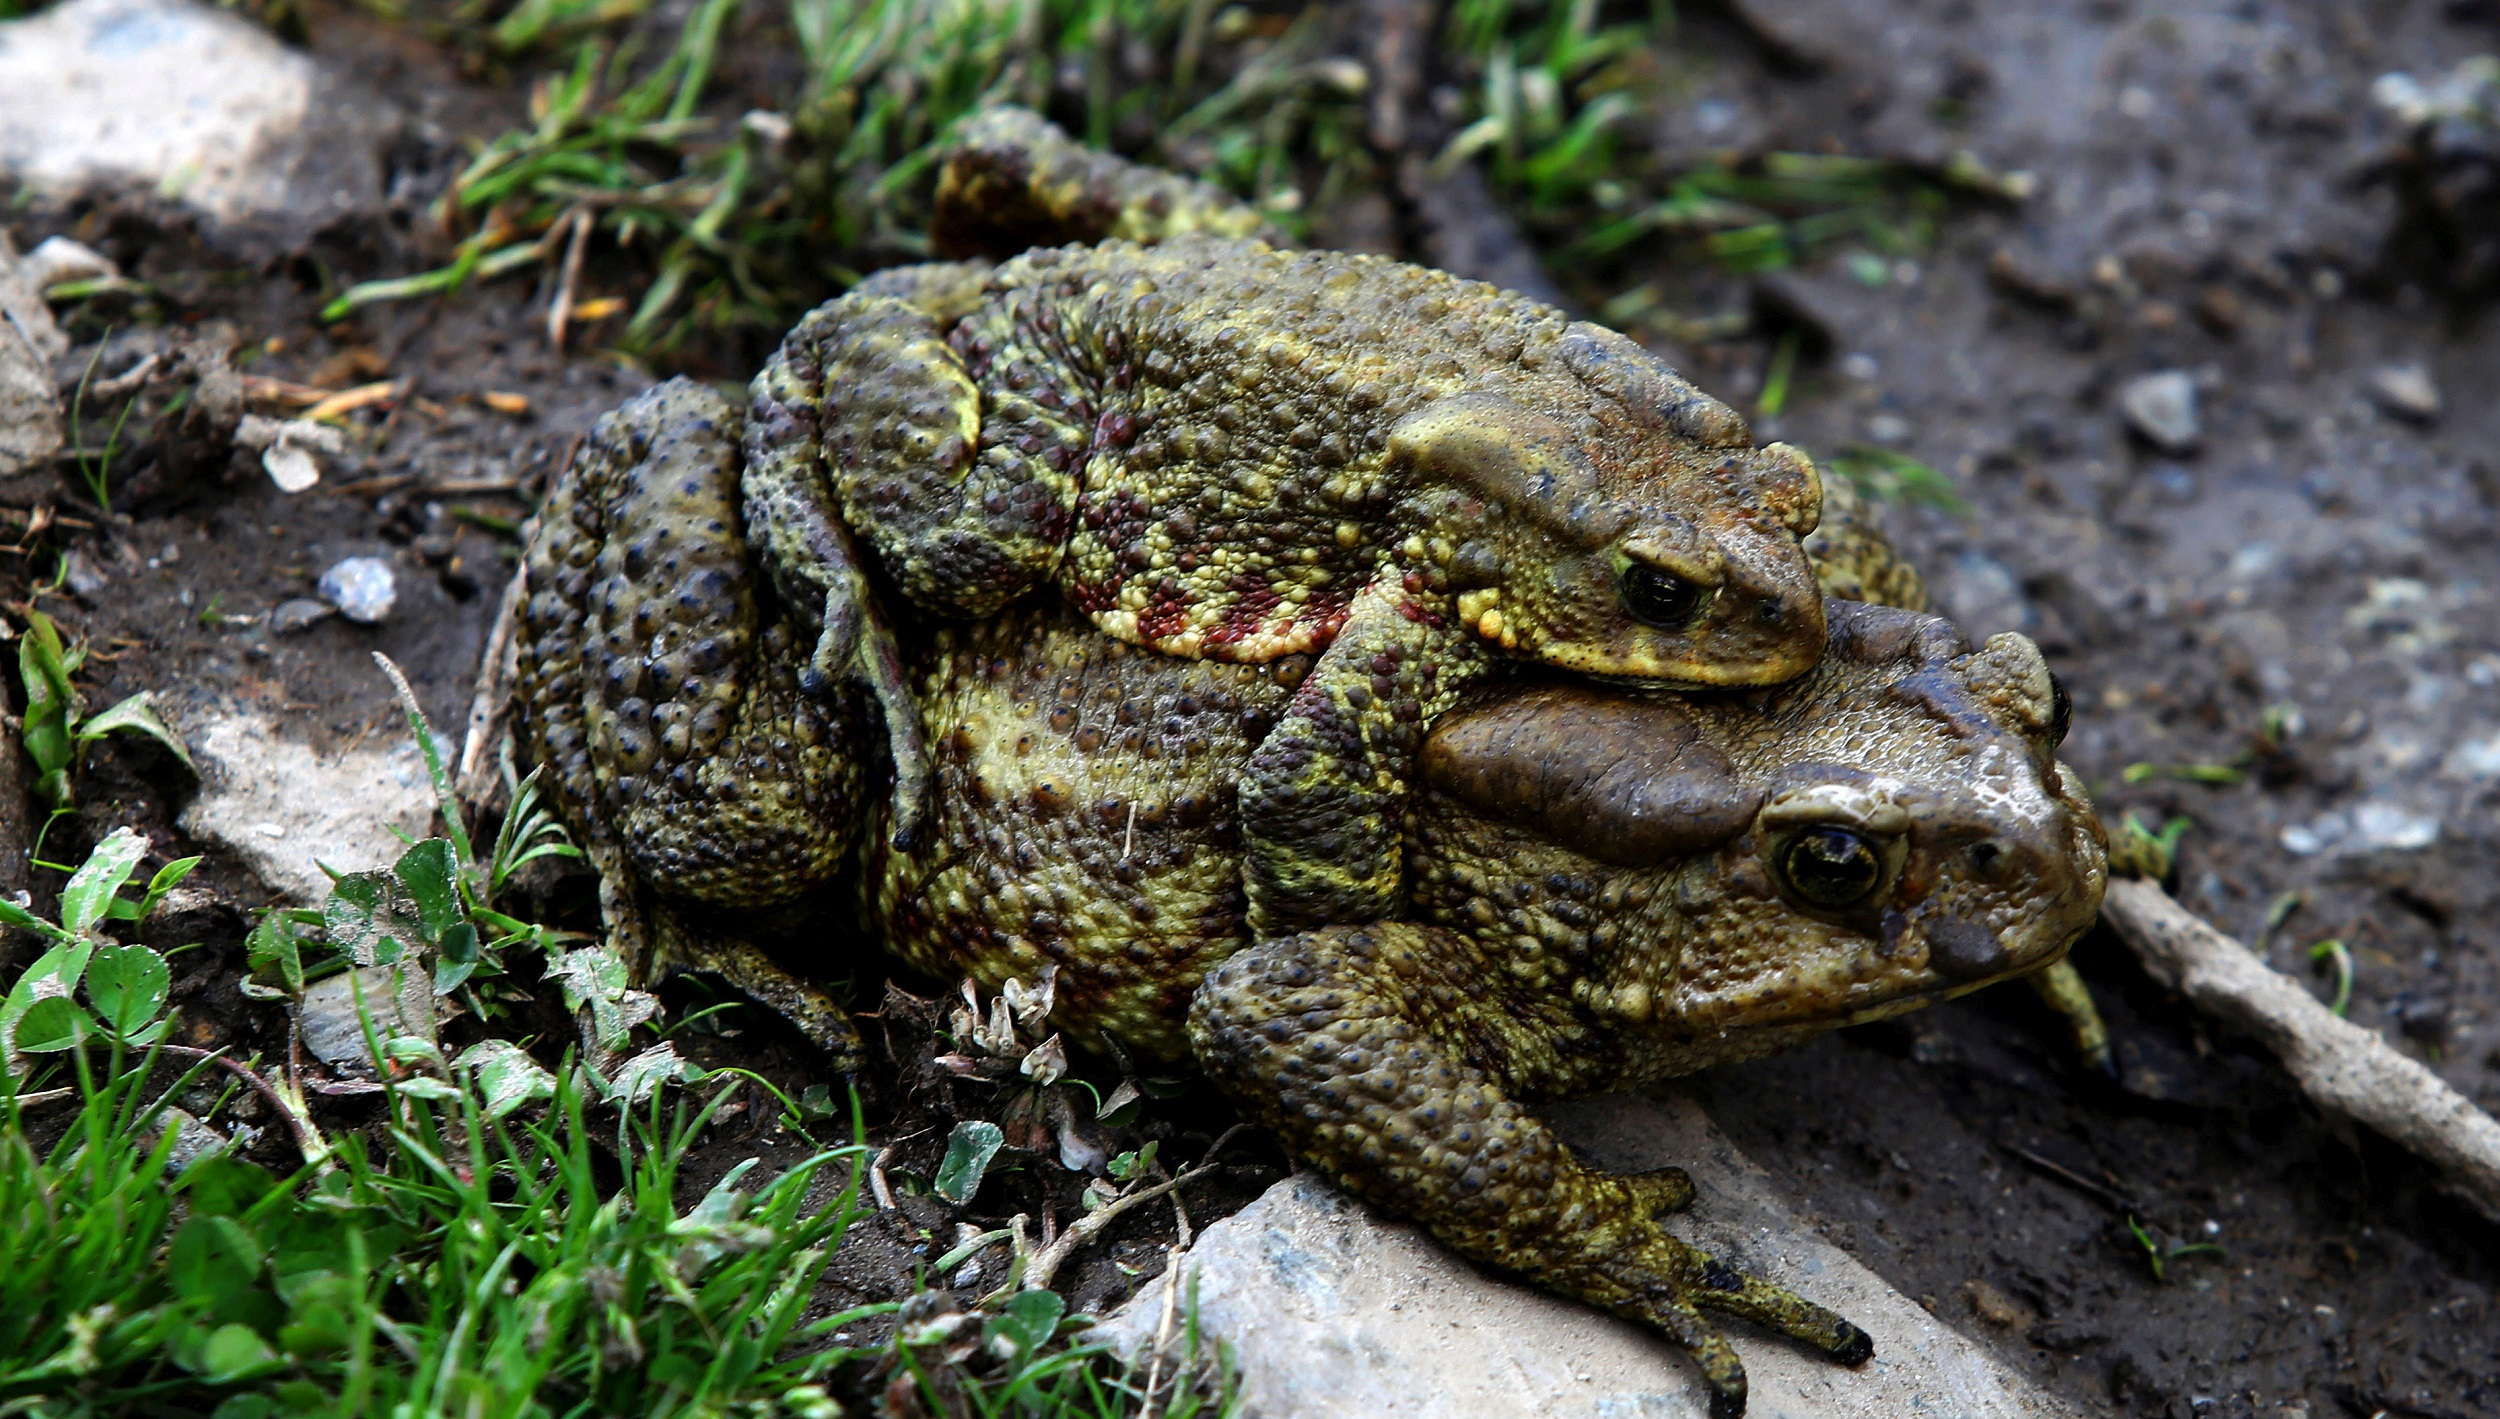 Two mating frogs in Langtang National Park at Dhunche in Rasuwa district of Nepal. Frogs mate during the monsoon season [image by: Sunil Sharma/ZUMA Wire/Alamy Live News]